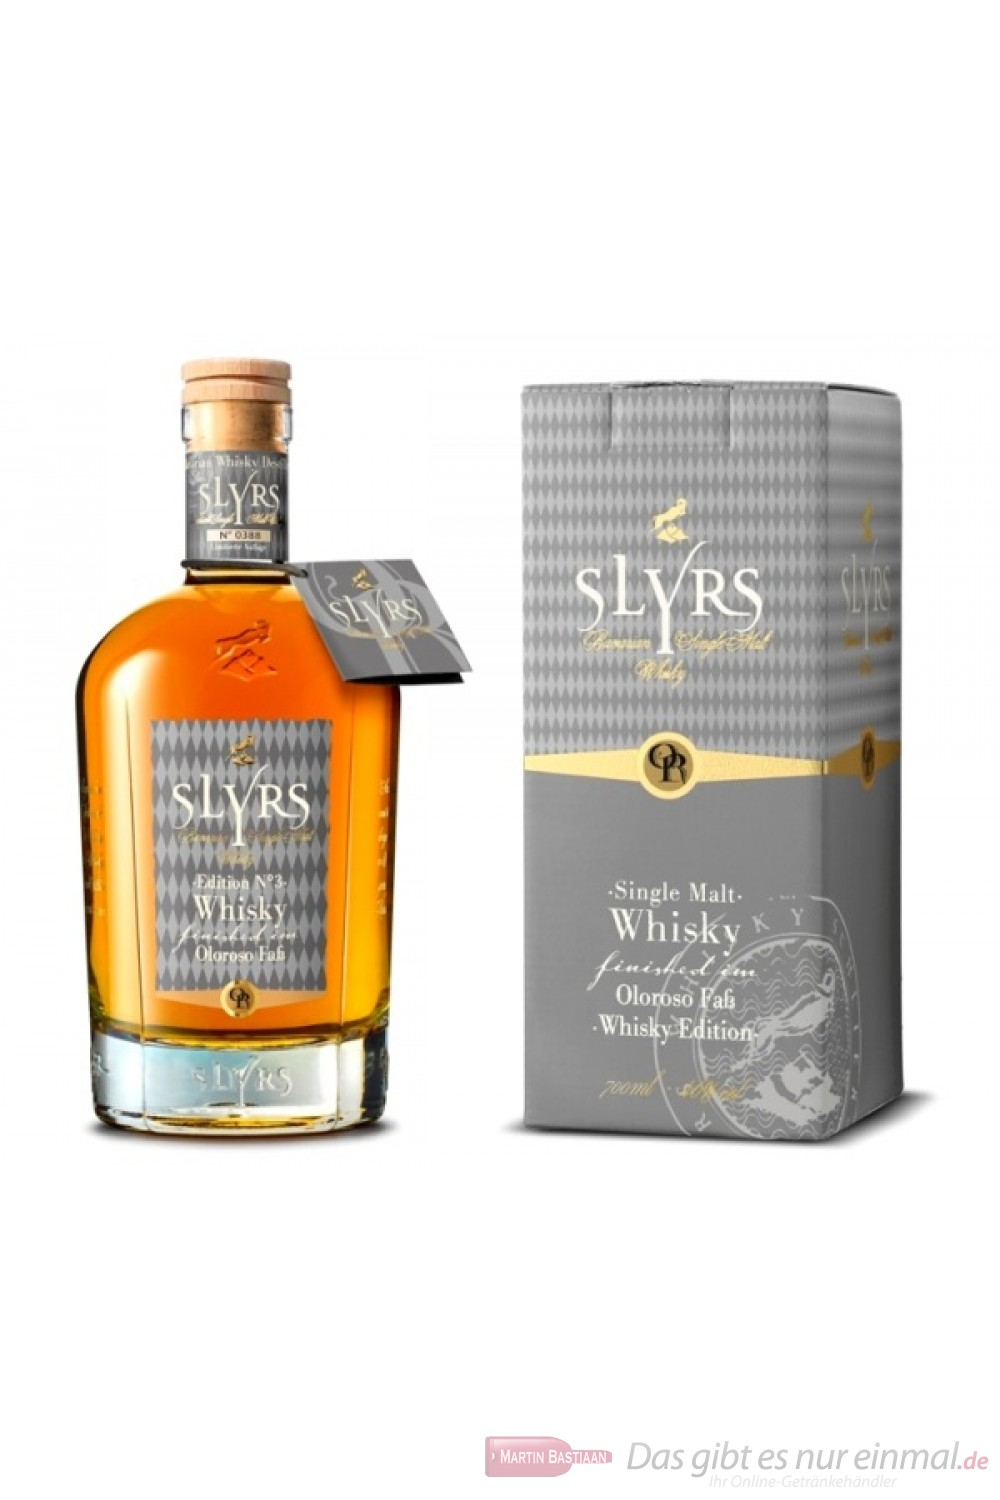 Slyrs Oloroso finished